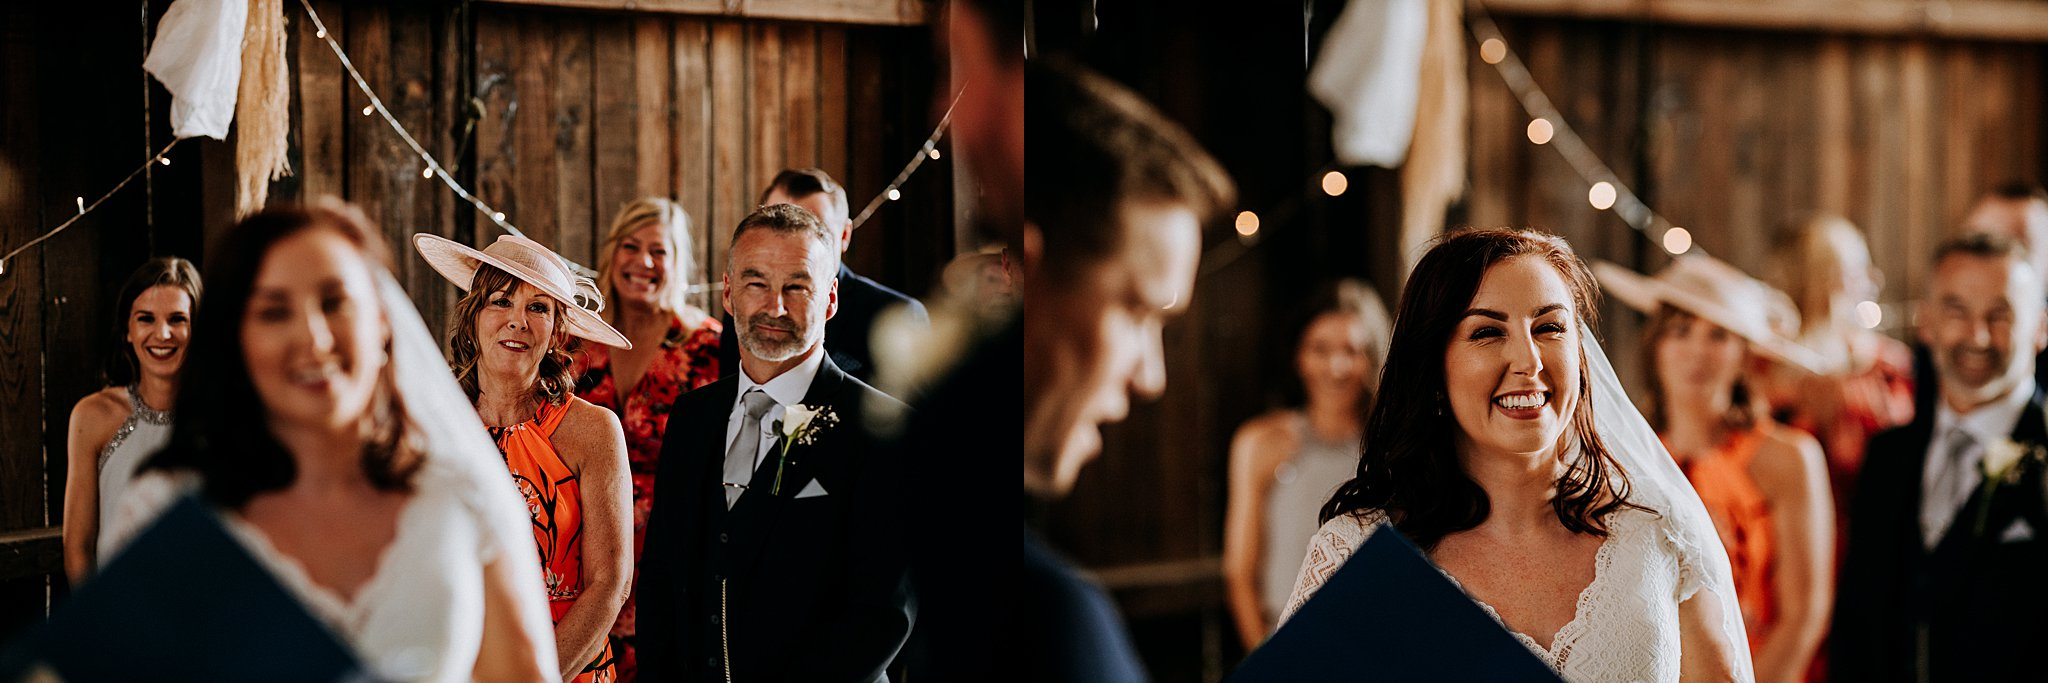 documentary wedding photographer North East